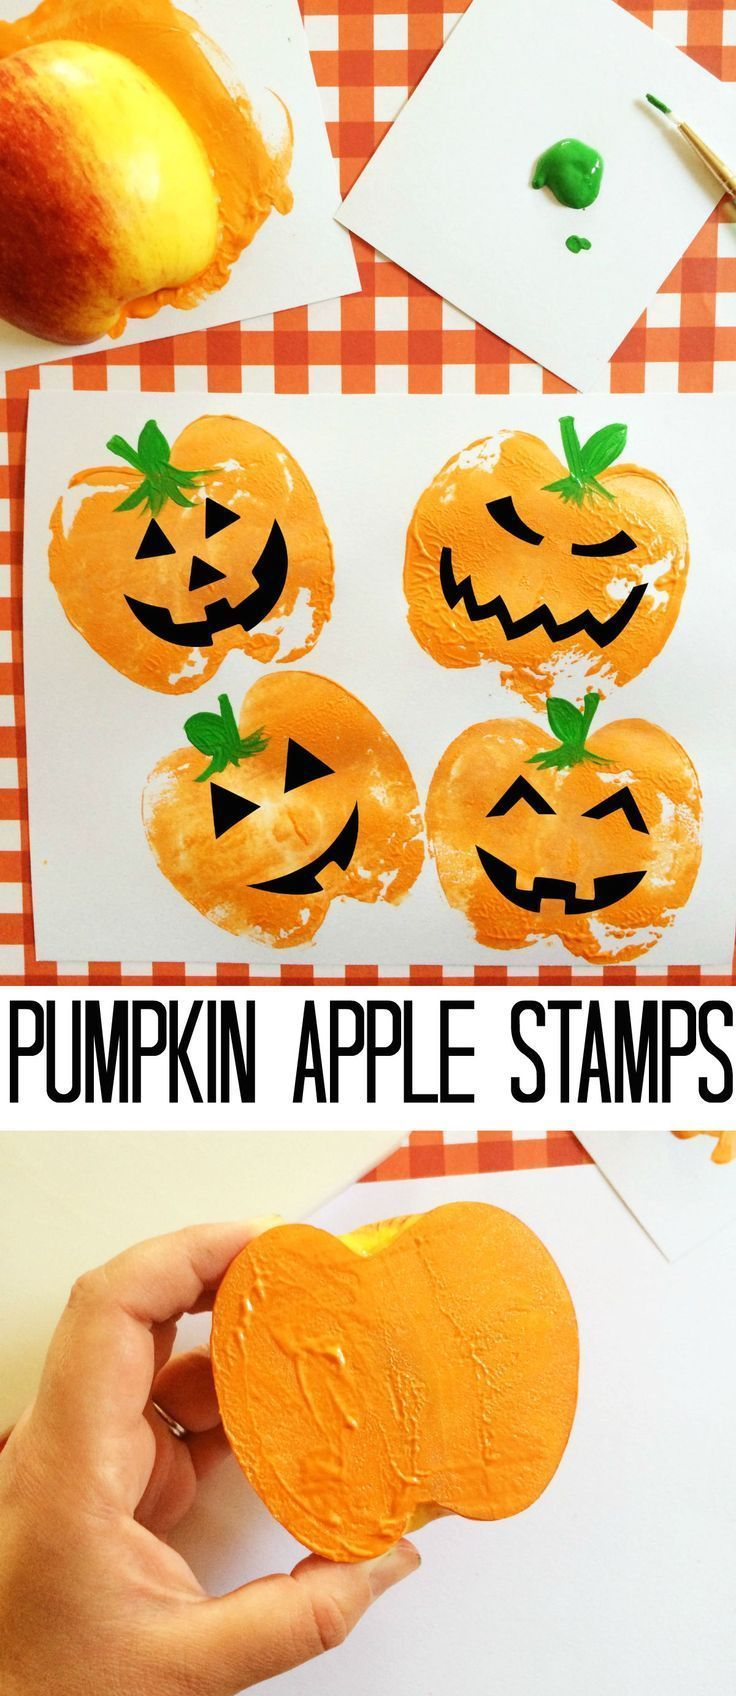 Adorable pumpkin craft for kids! Stamp mini pumpkins with apples. Genius!